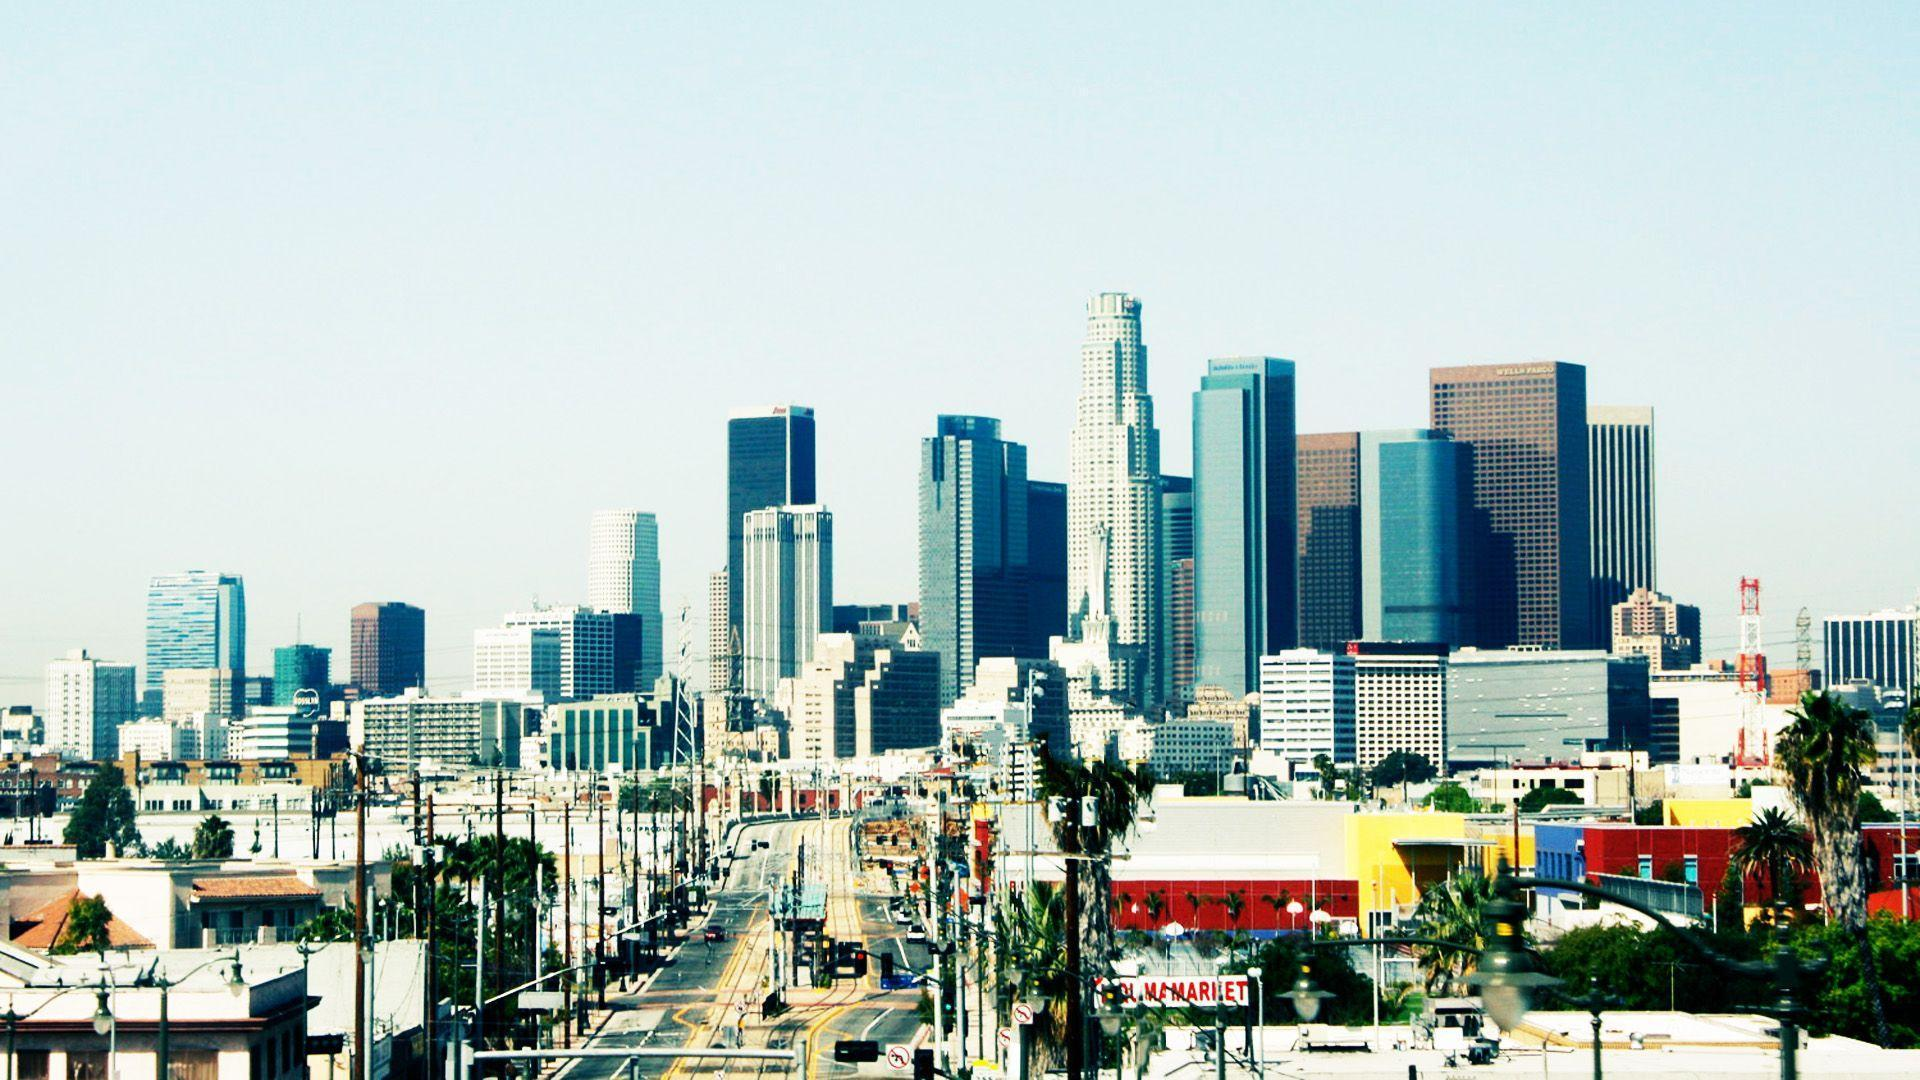 Los angeles free wallpaper